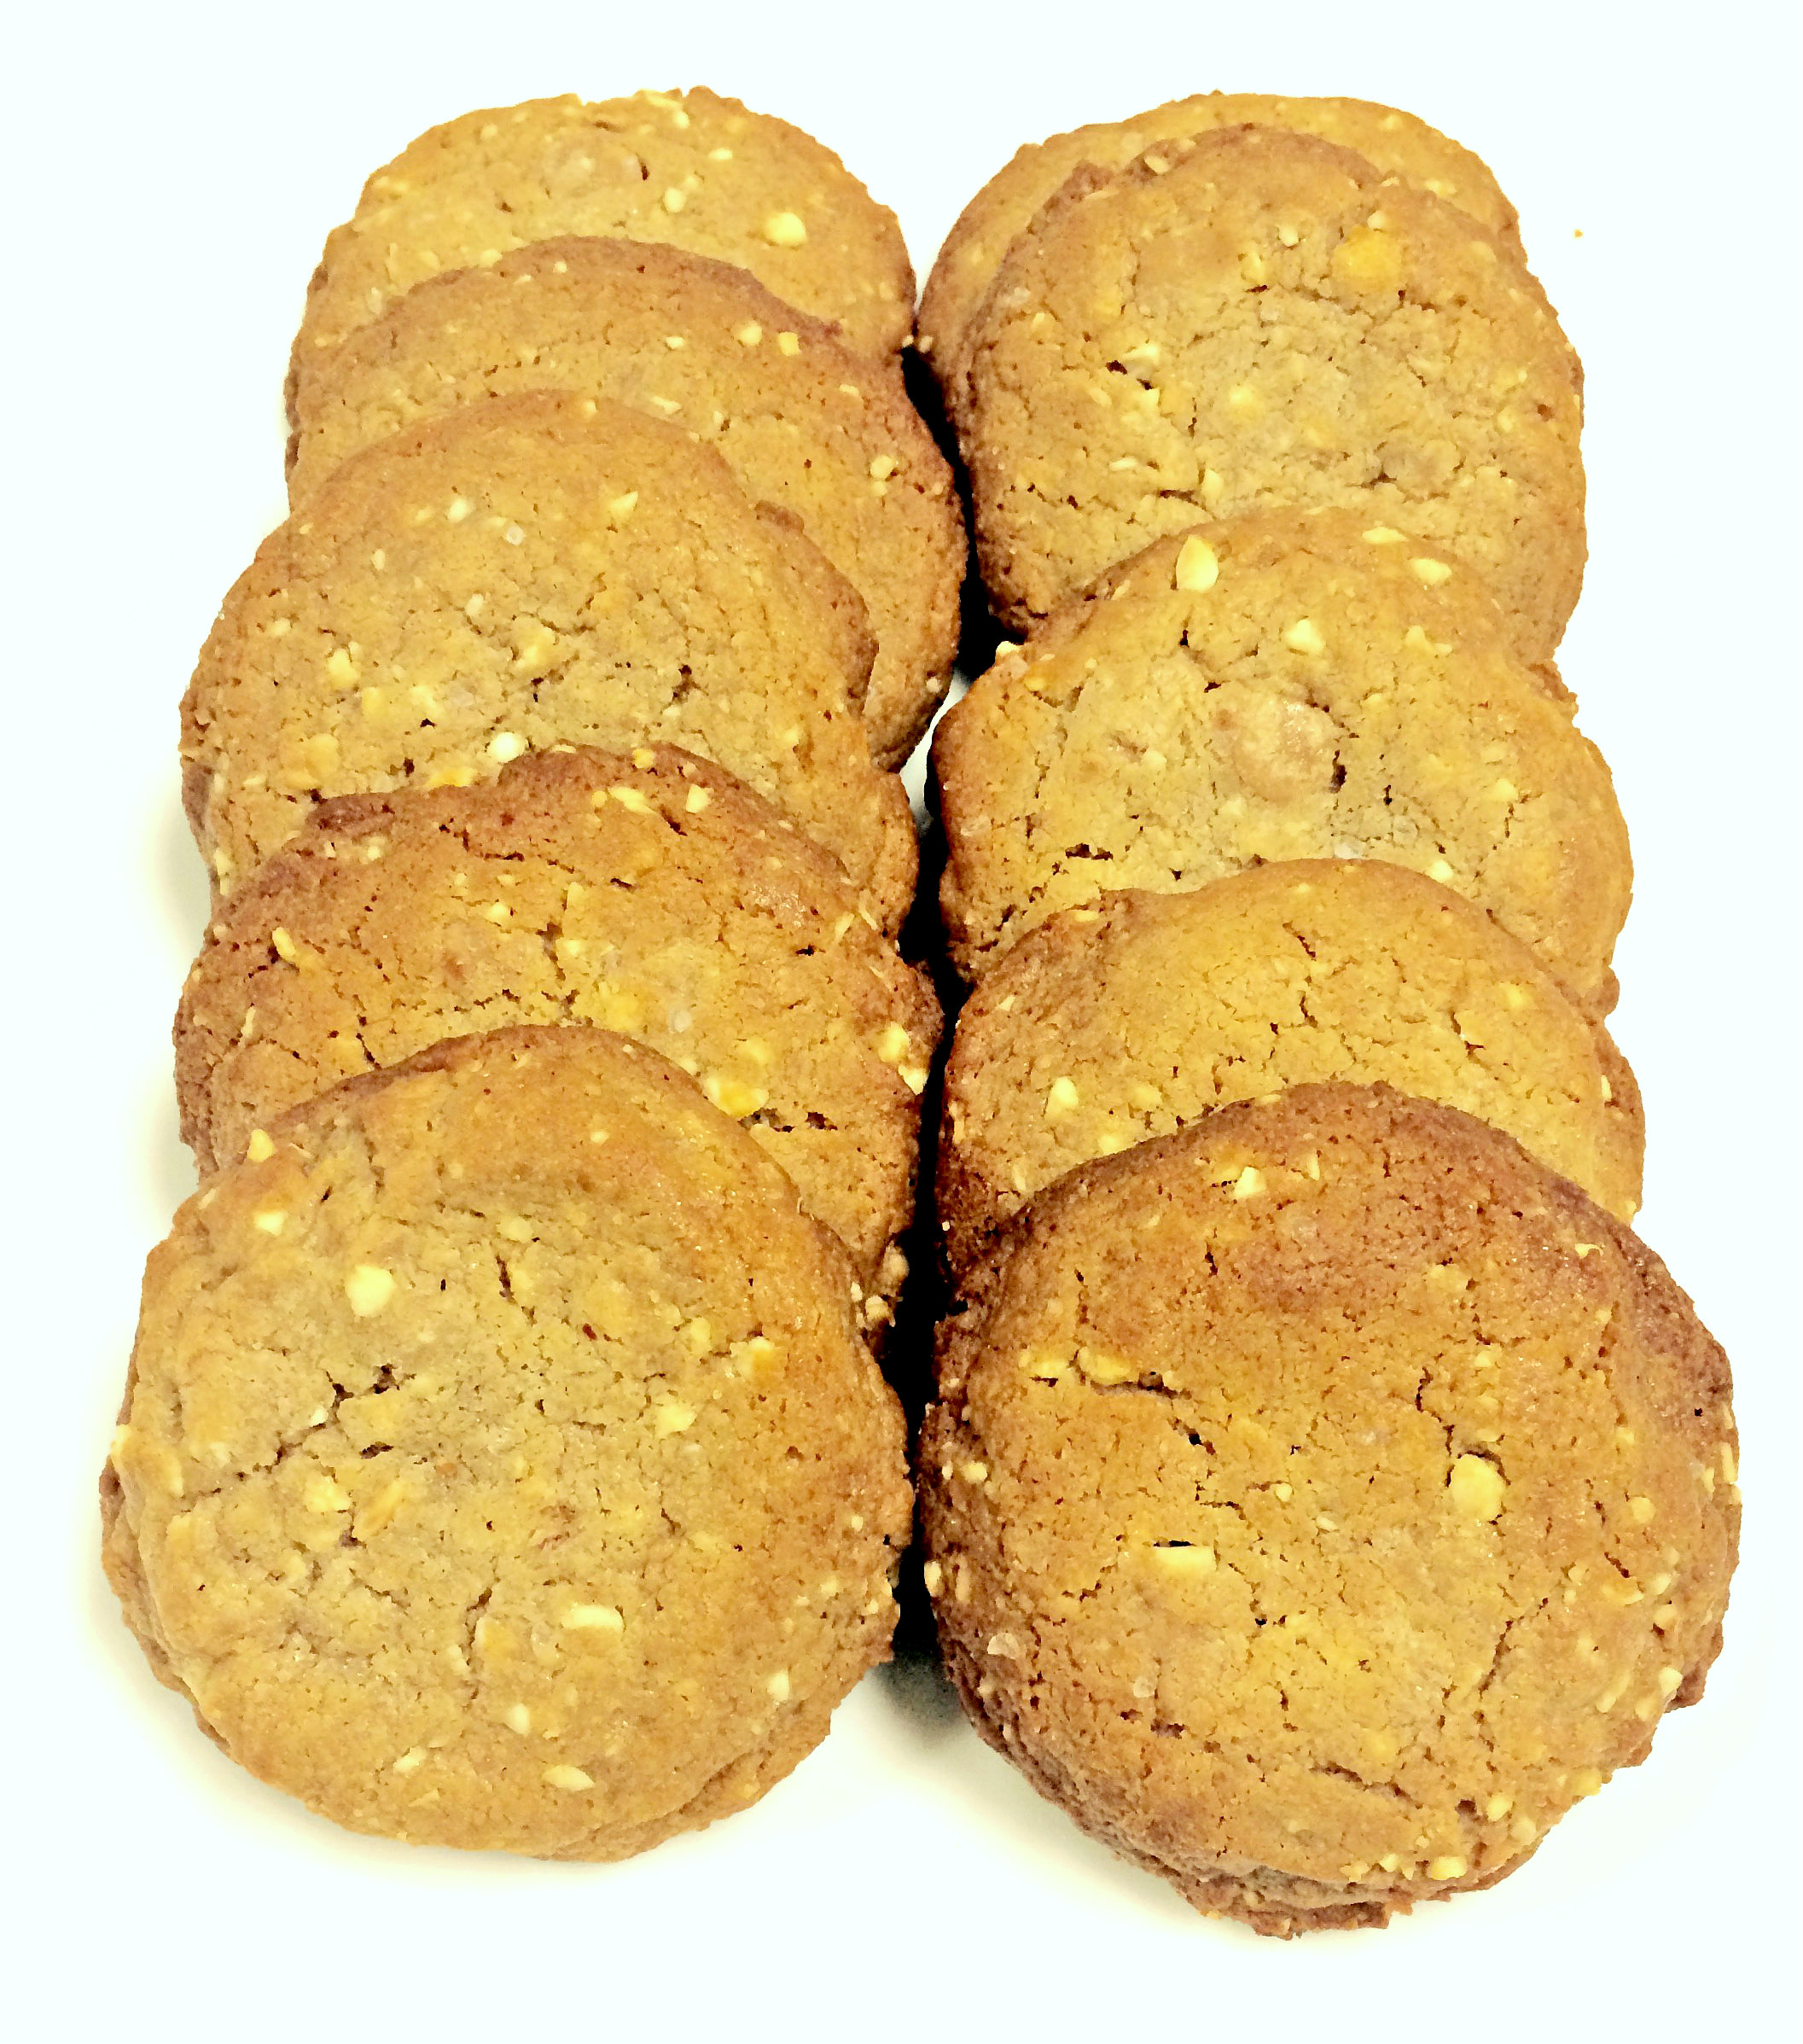 Peanut butter cookies with sea salt